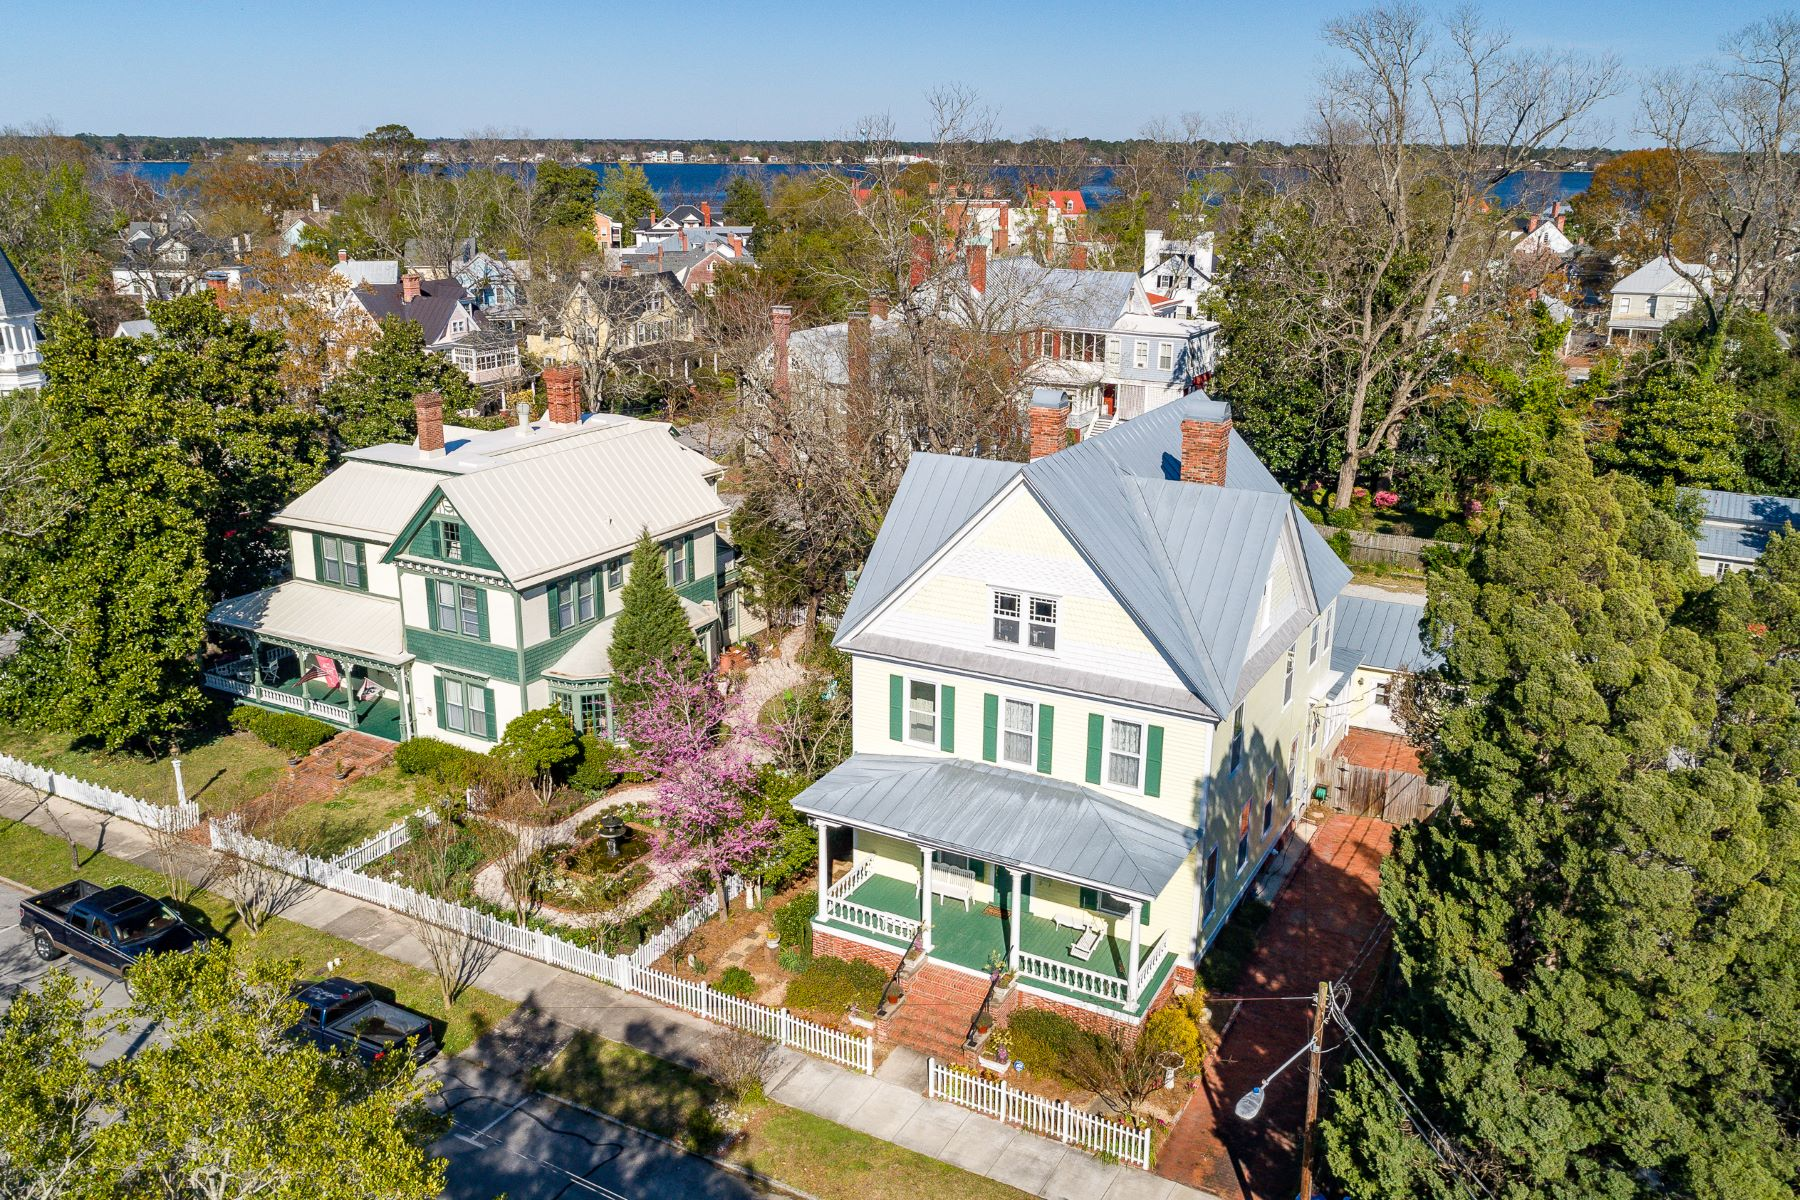 Single Family Homes for Sale at Impeccable Victorian Home in Historic District 512 Middle St. New Bern, North Carolina 28560 United States